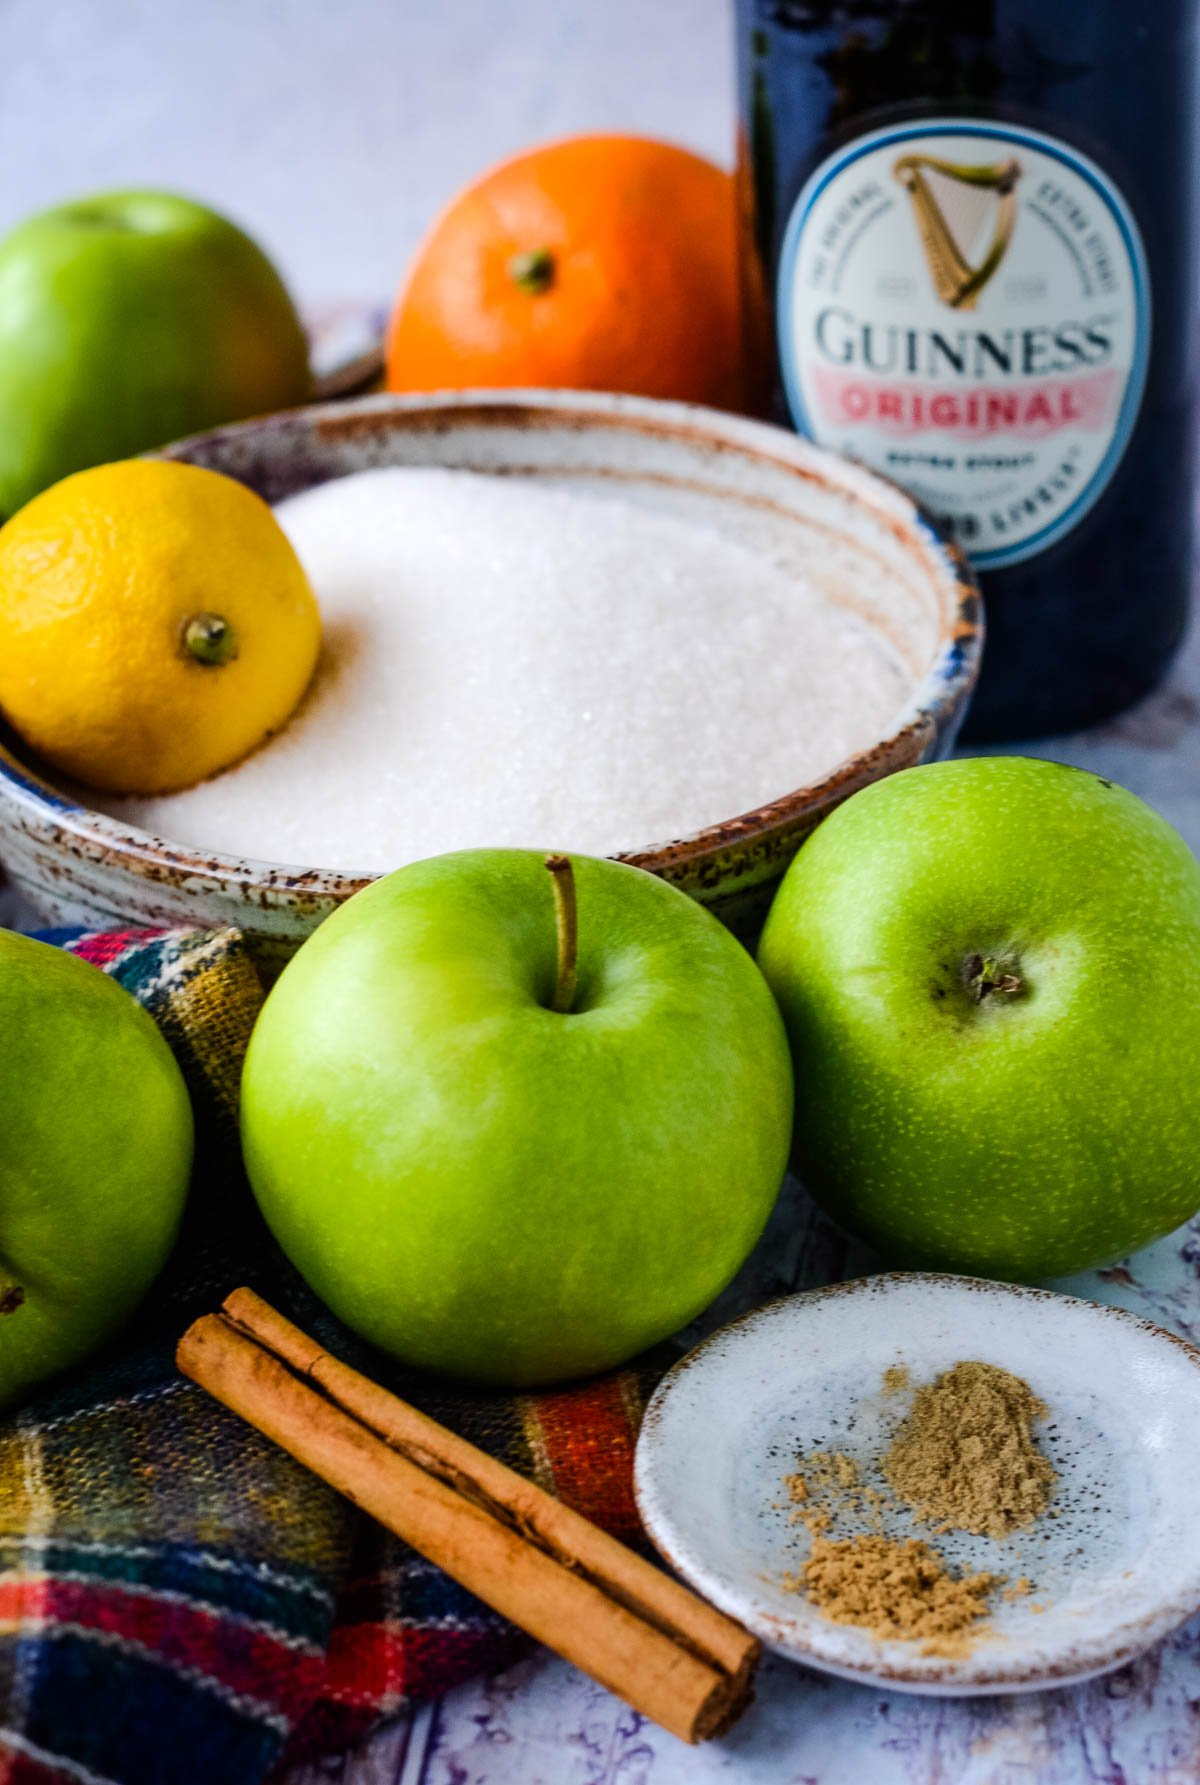 ingredients for Guinness jelly